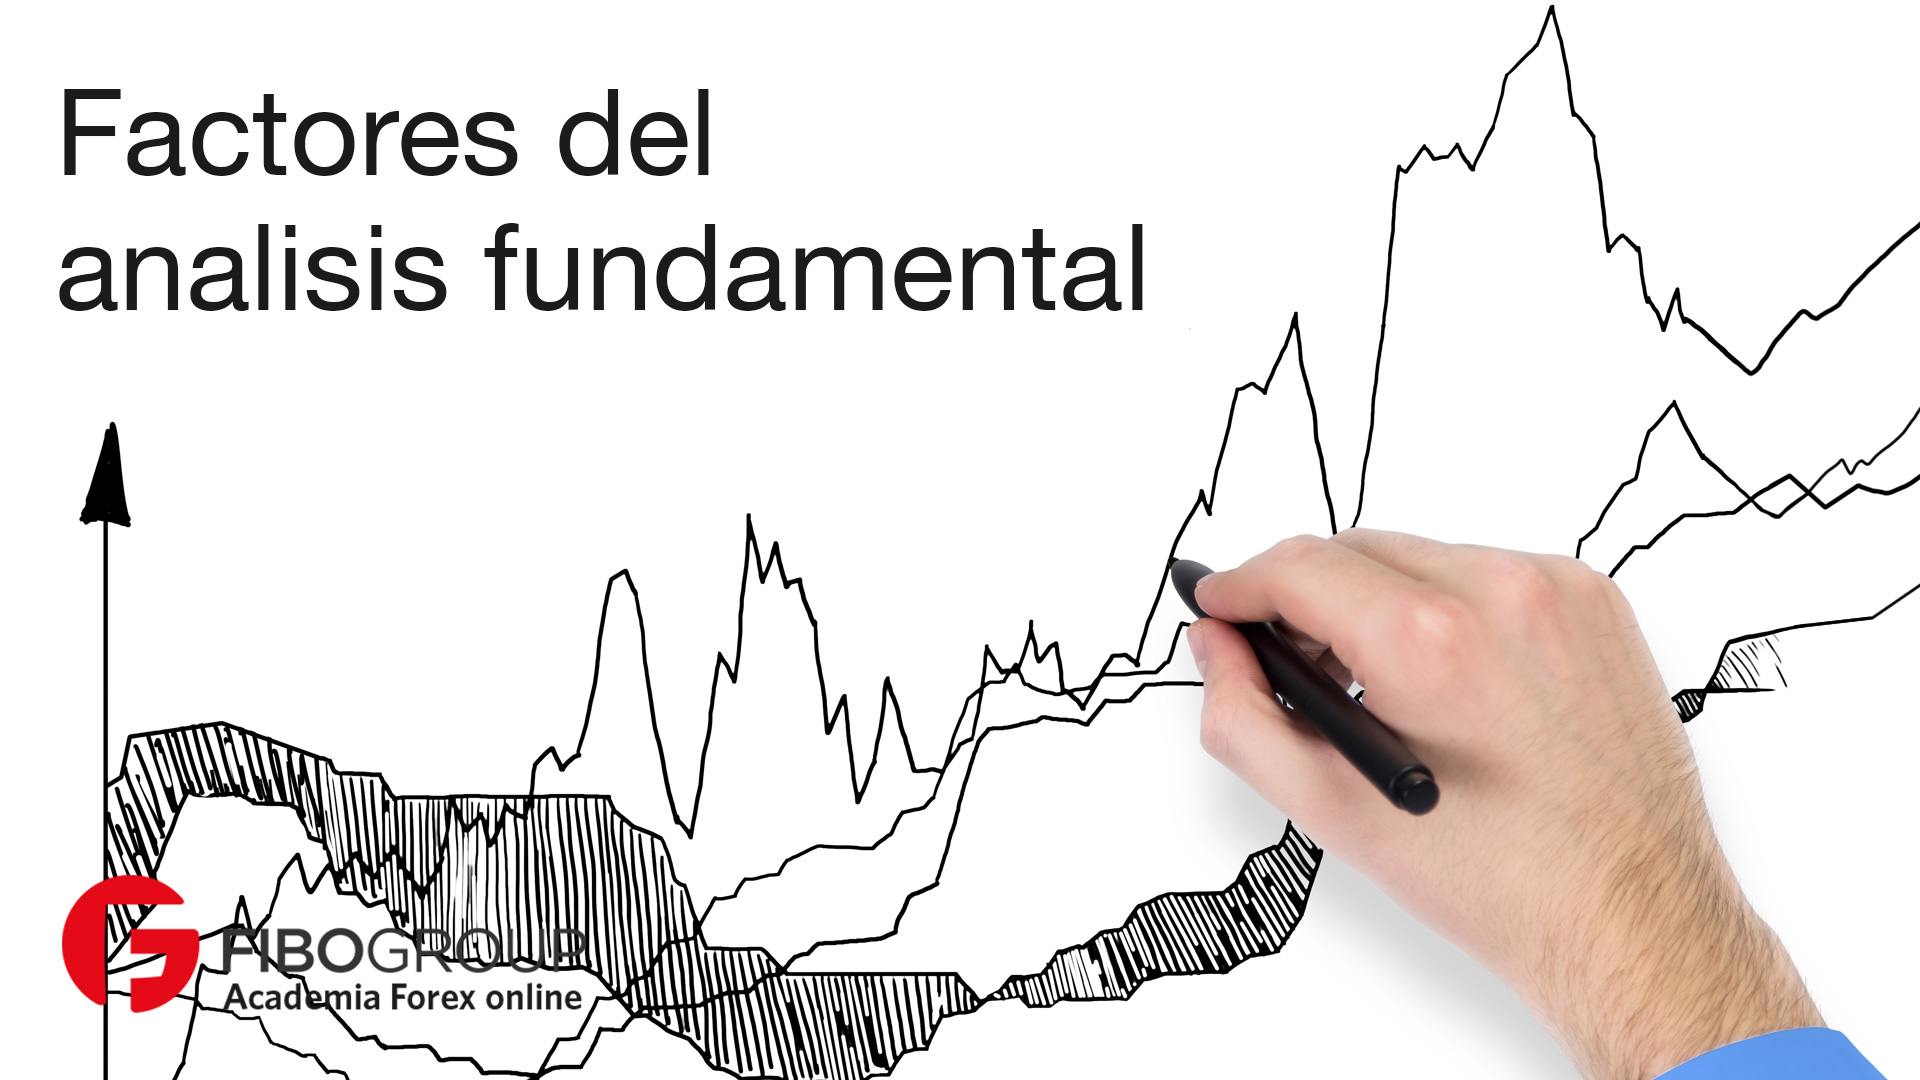 Factores del analisis fundamental